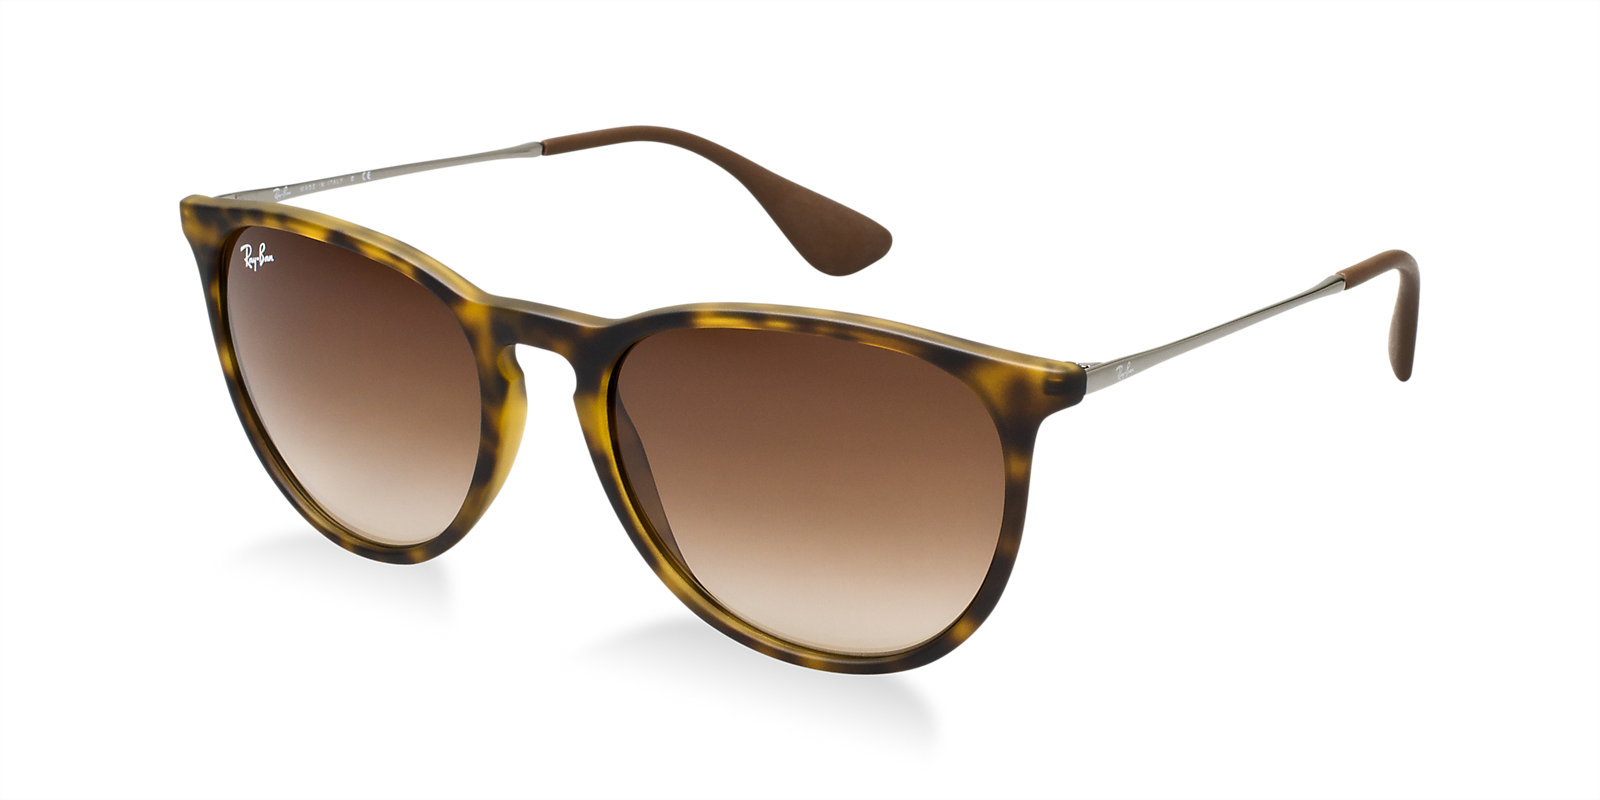 Ray-Ban-Sunglasses-for-Men (11)